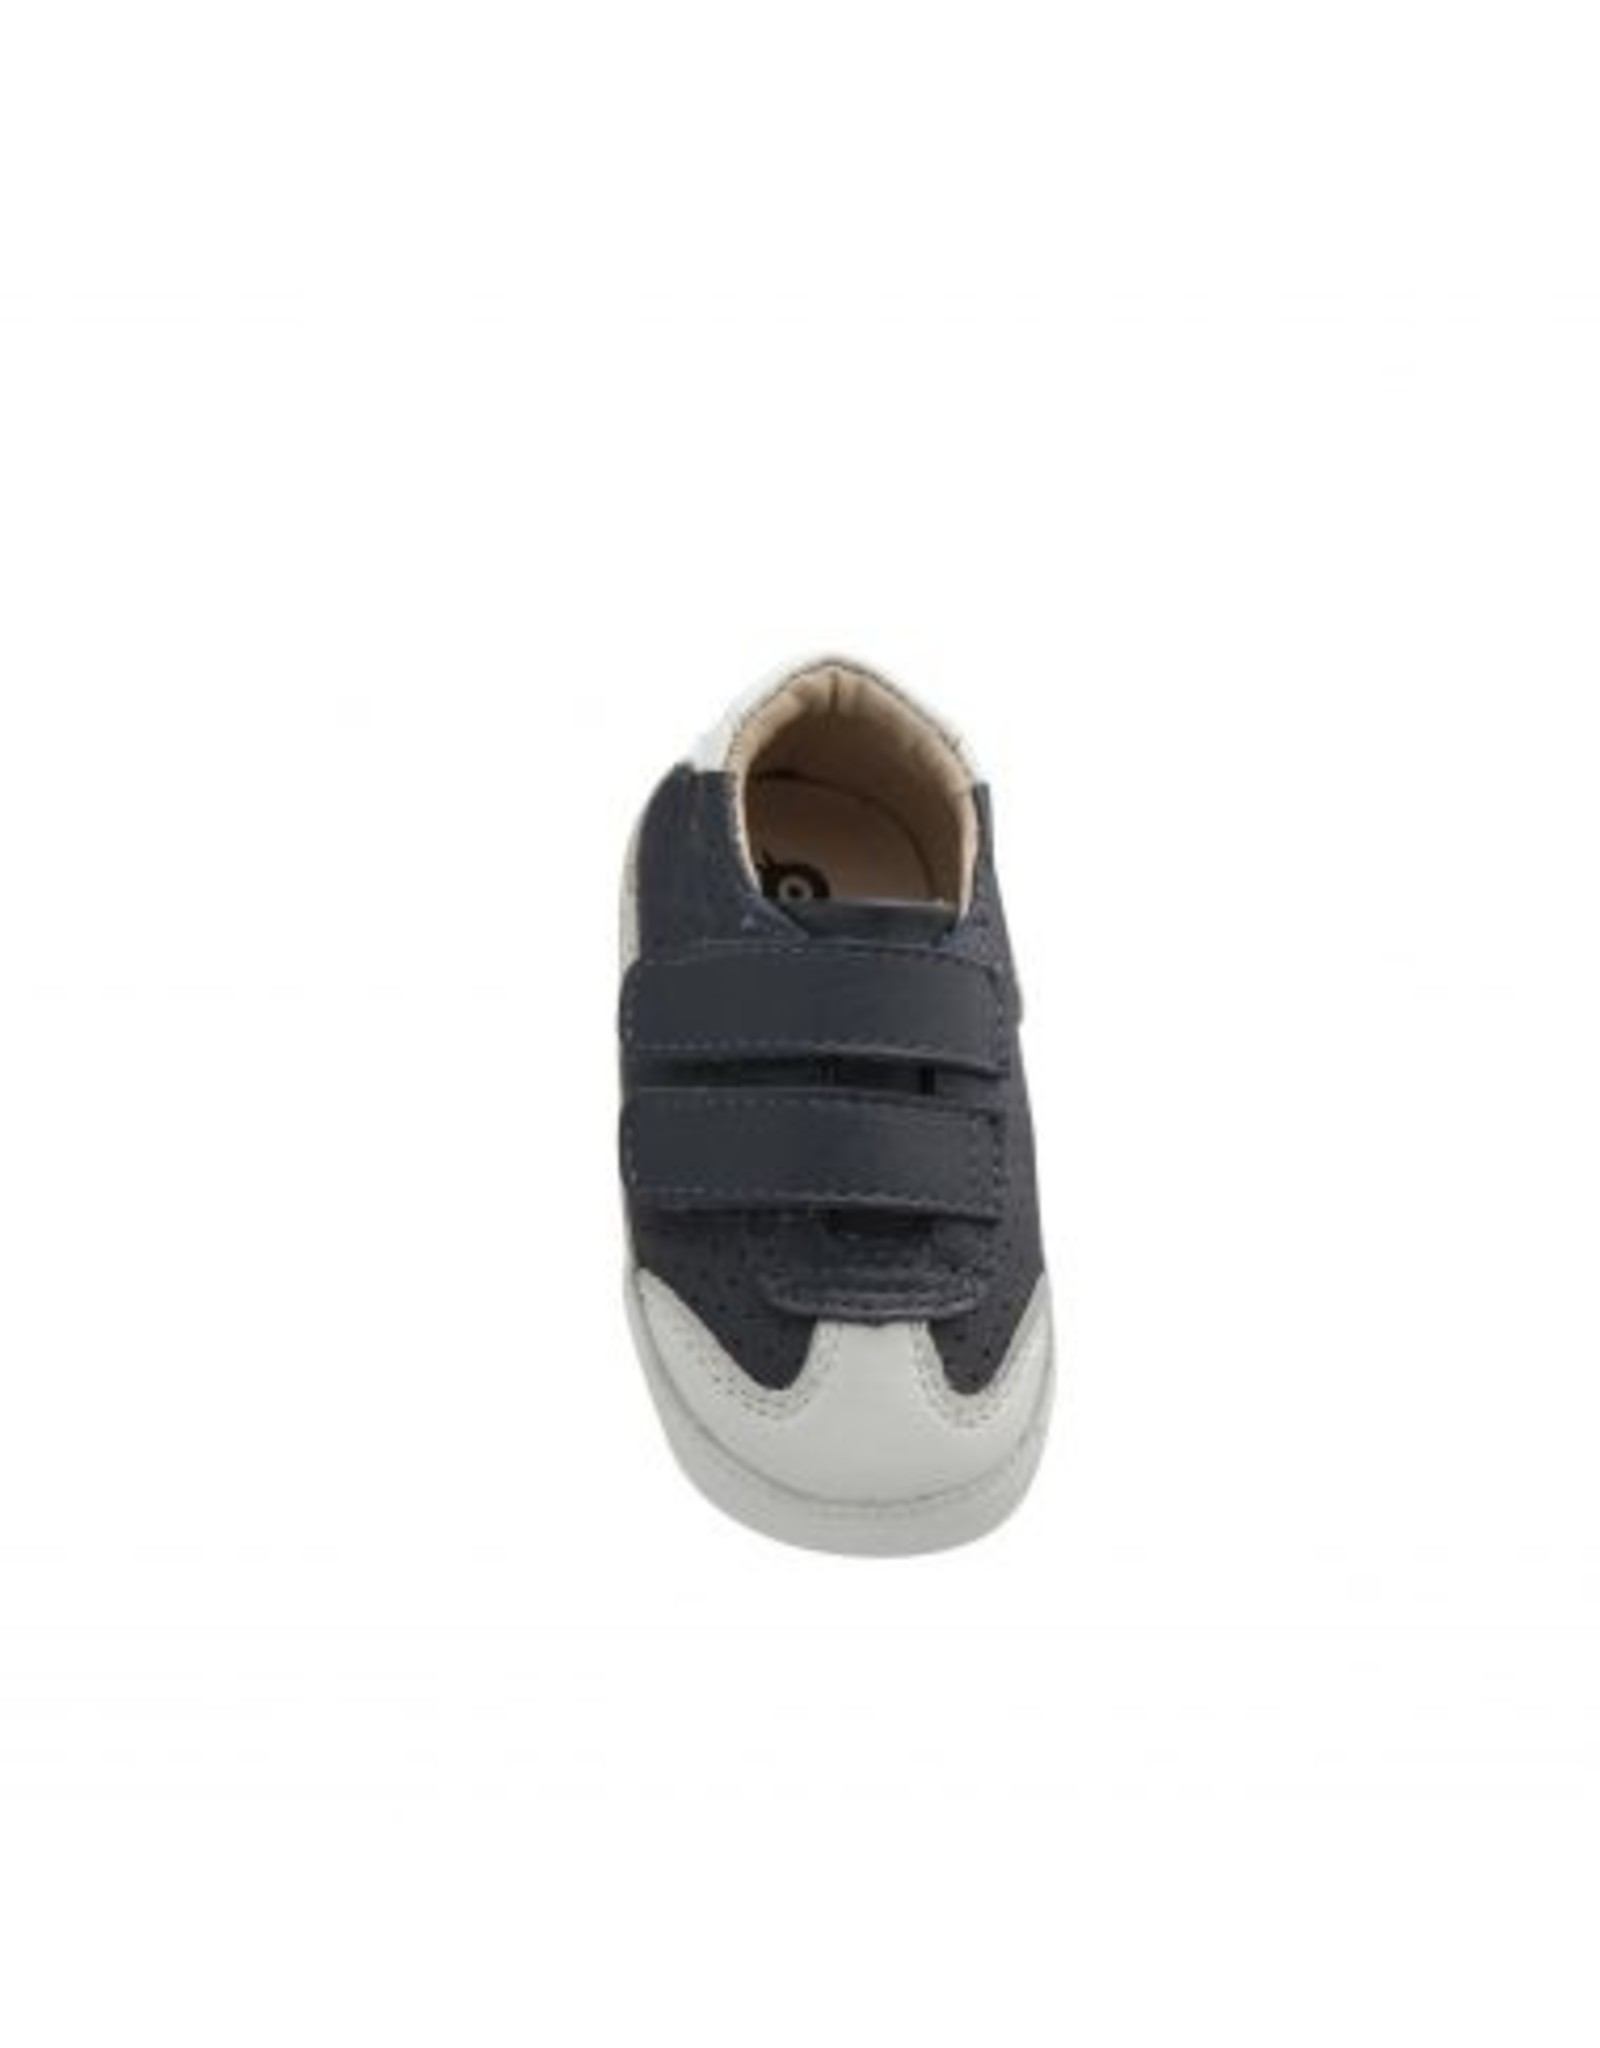 Oldsoles OLDSOLES Chaser Navy/Snow